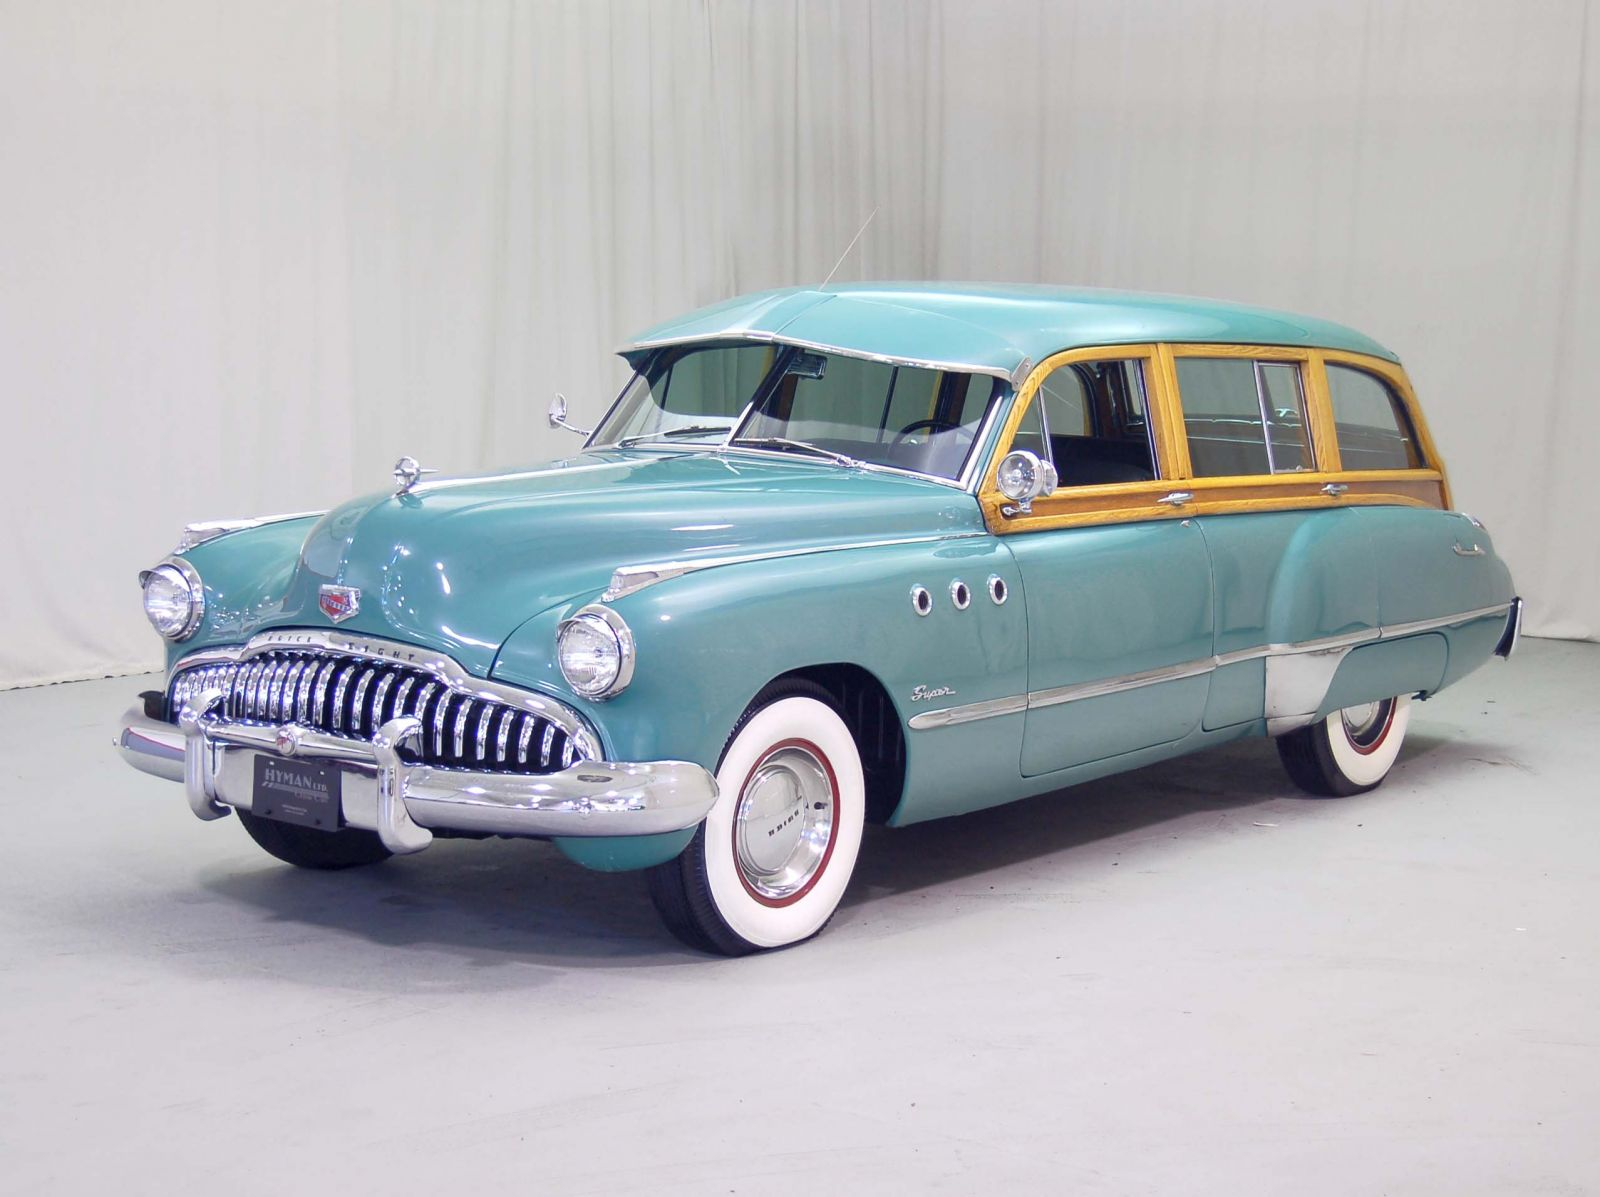 1949 Buick Woody Classic Car For Sale   Buy 1949 Buick Woody at Hyman LTD